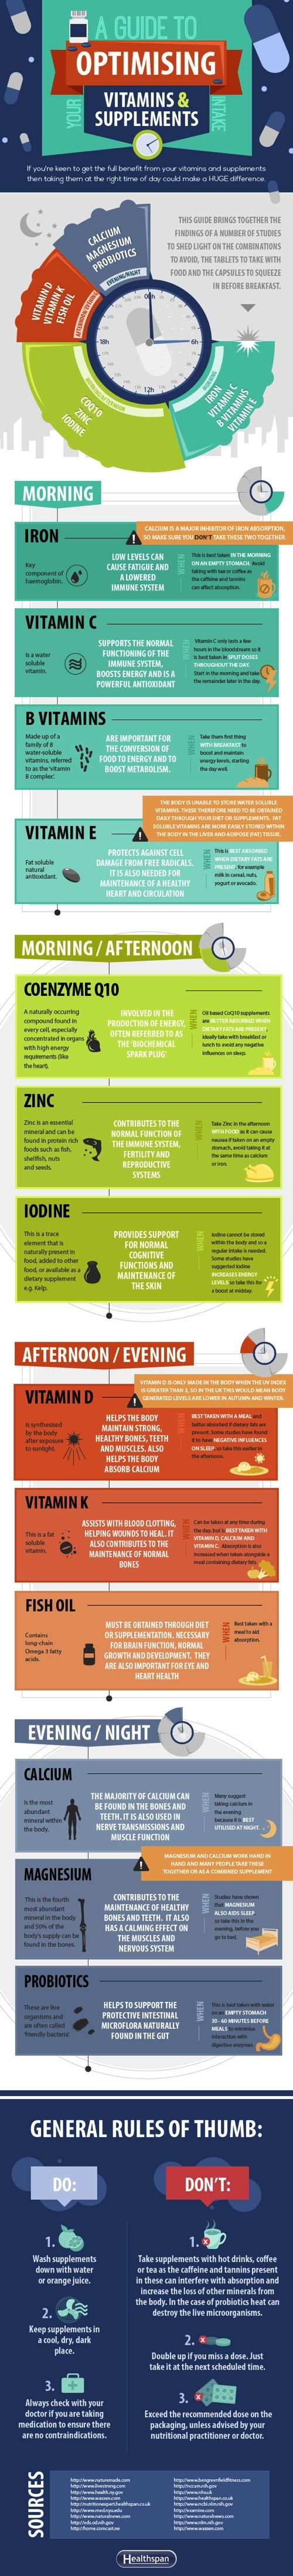 A Guide to Optimising Vitamins and Supplements